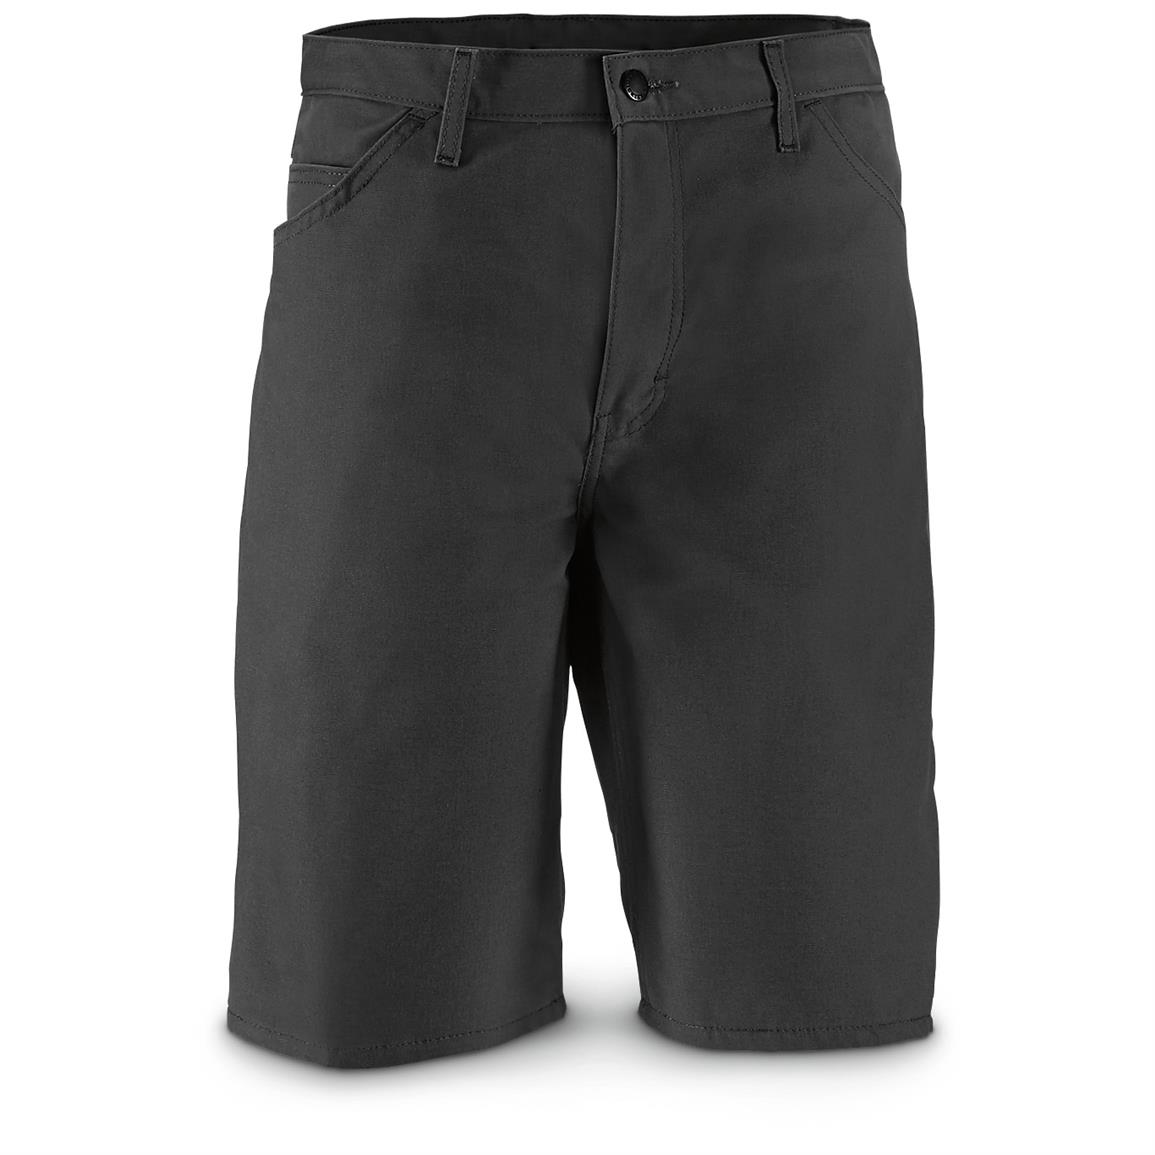 Dickies Men's Carpenter Shorts, Slight Irregulars, Black